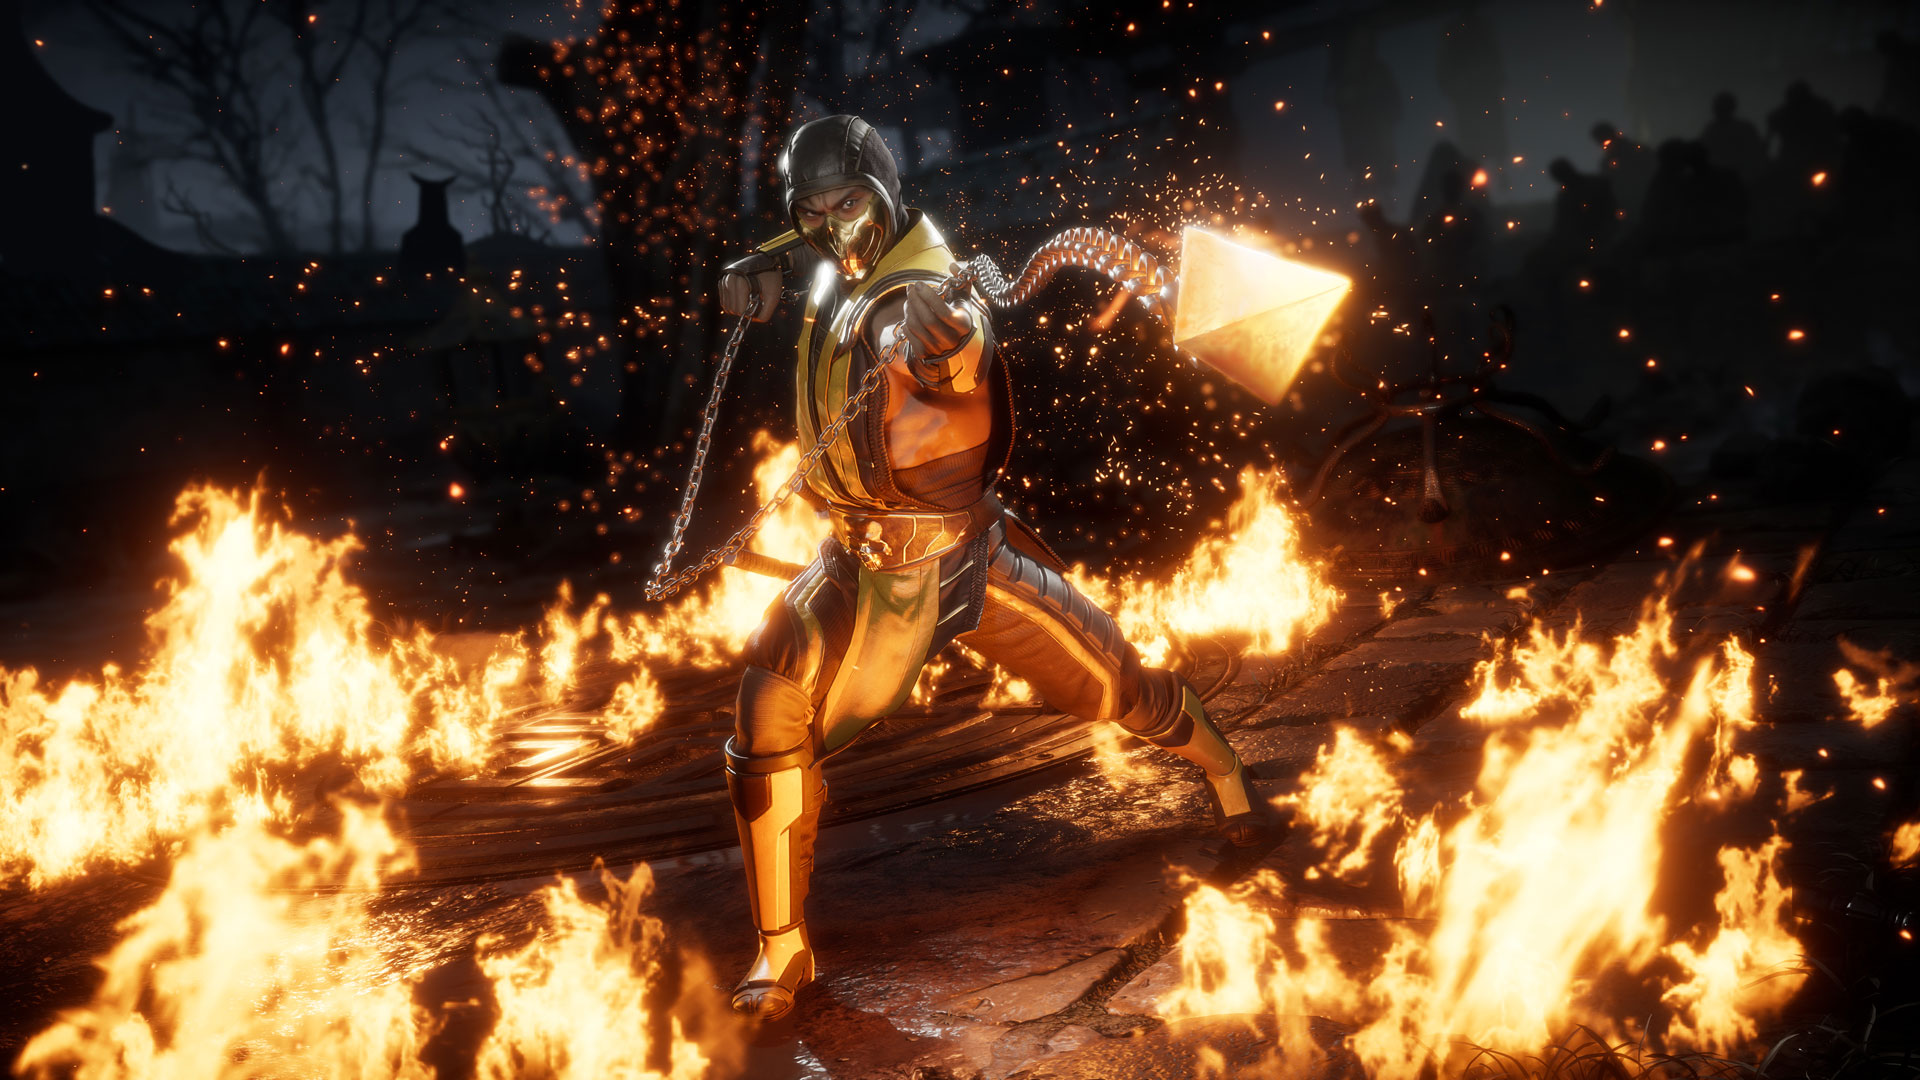 Mortal Kombat 11 Tfg Profile